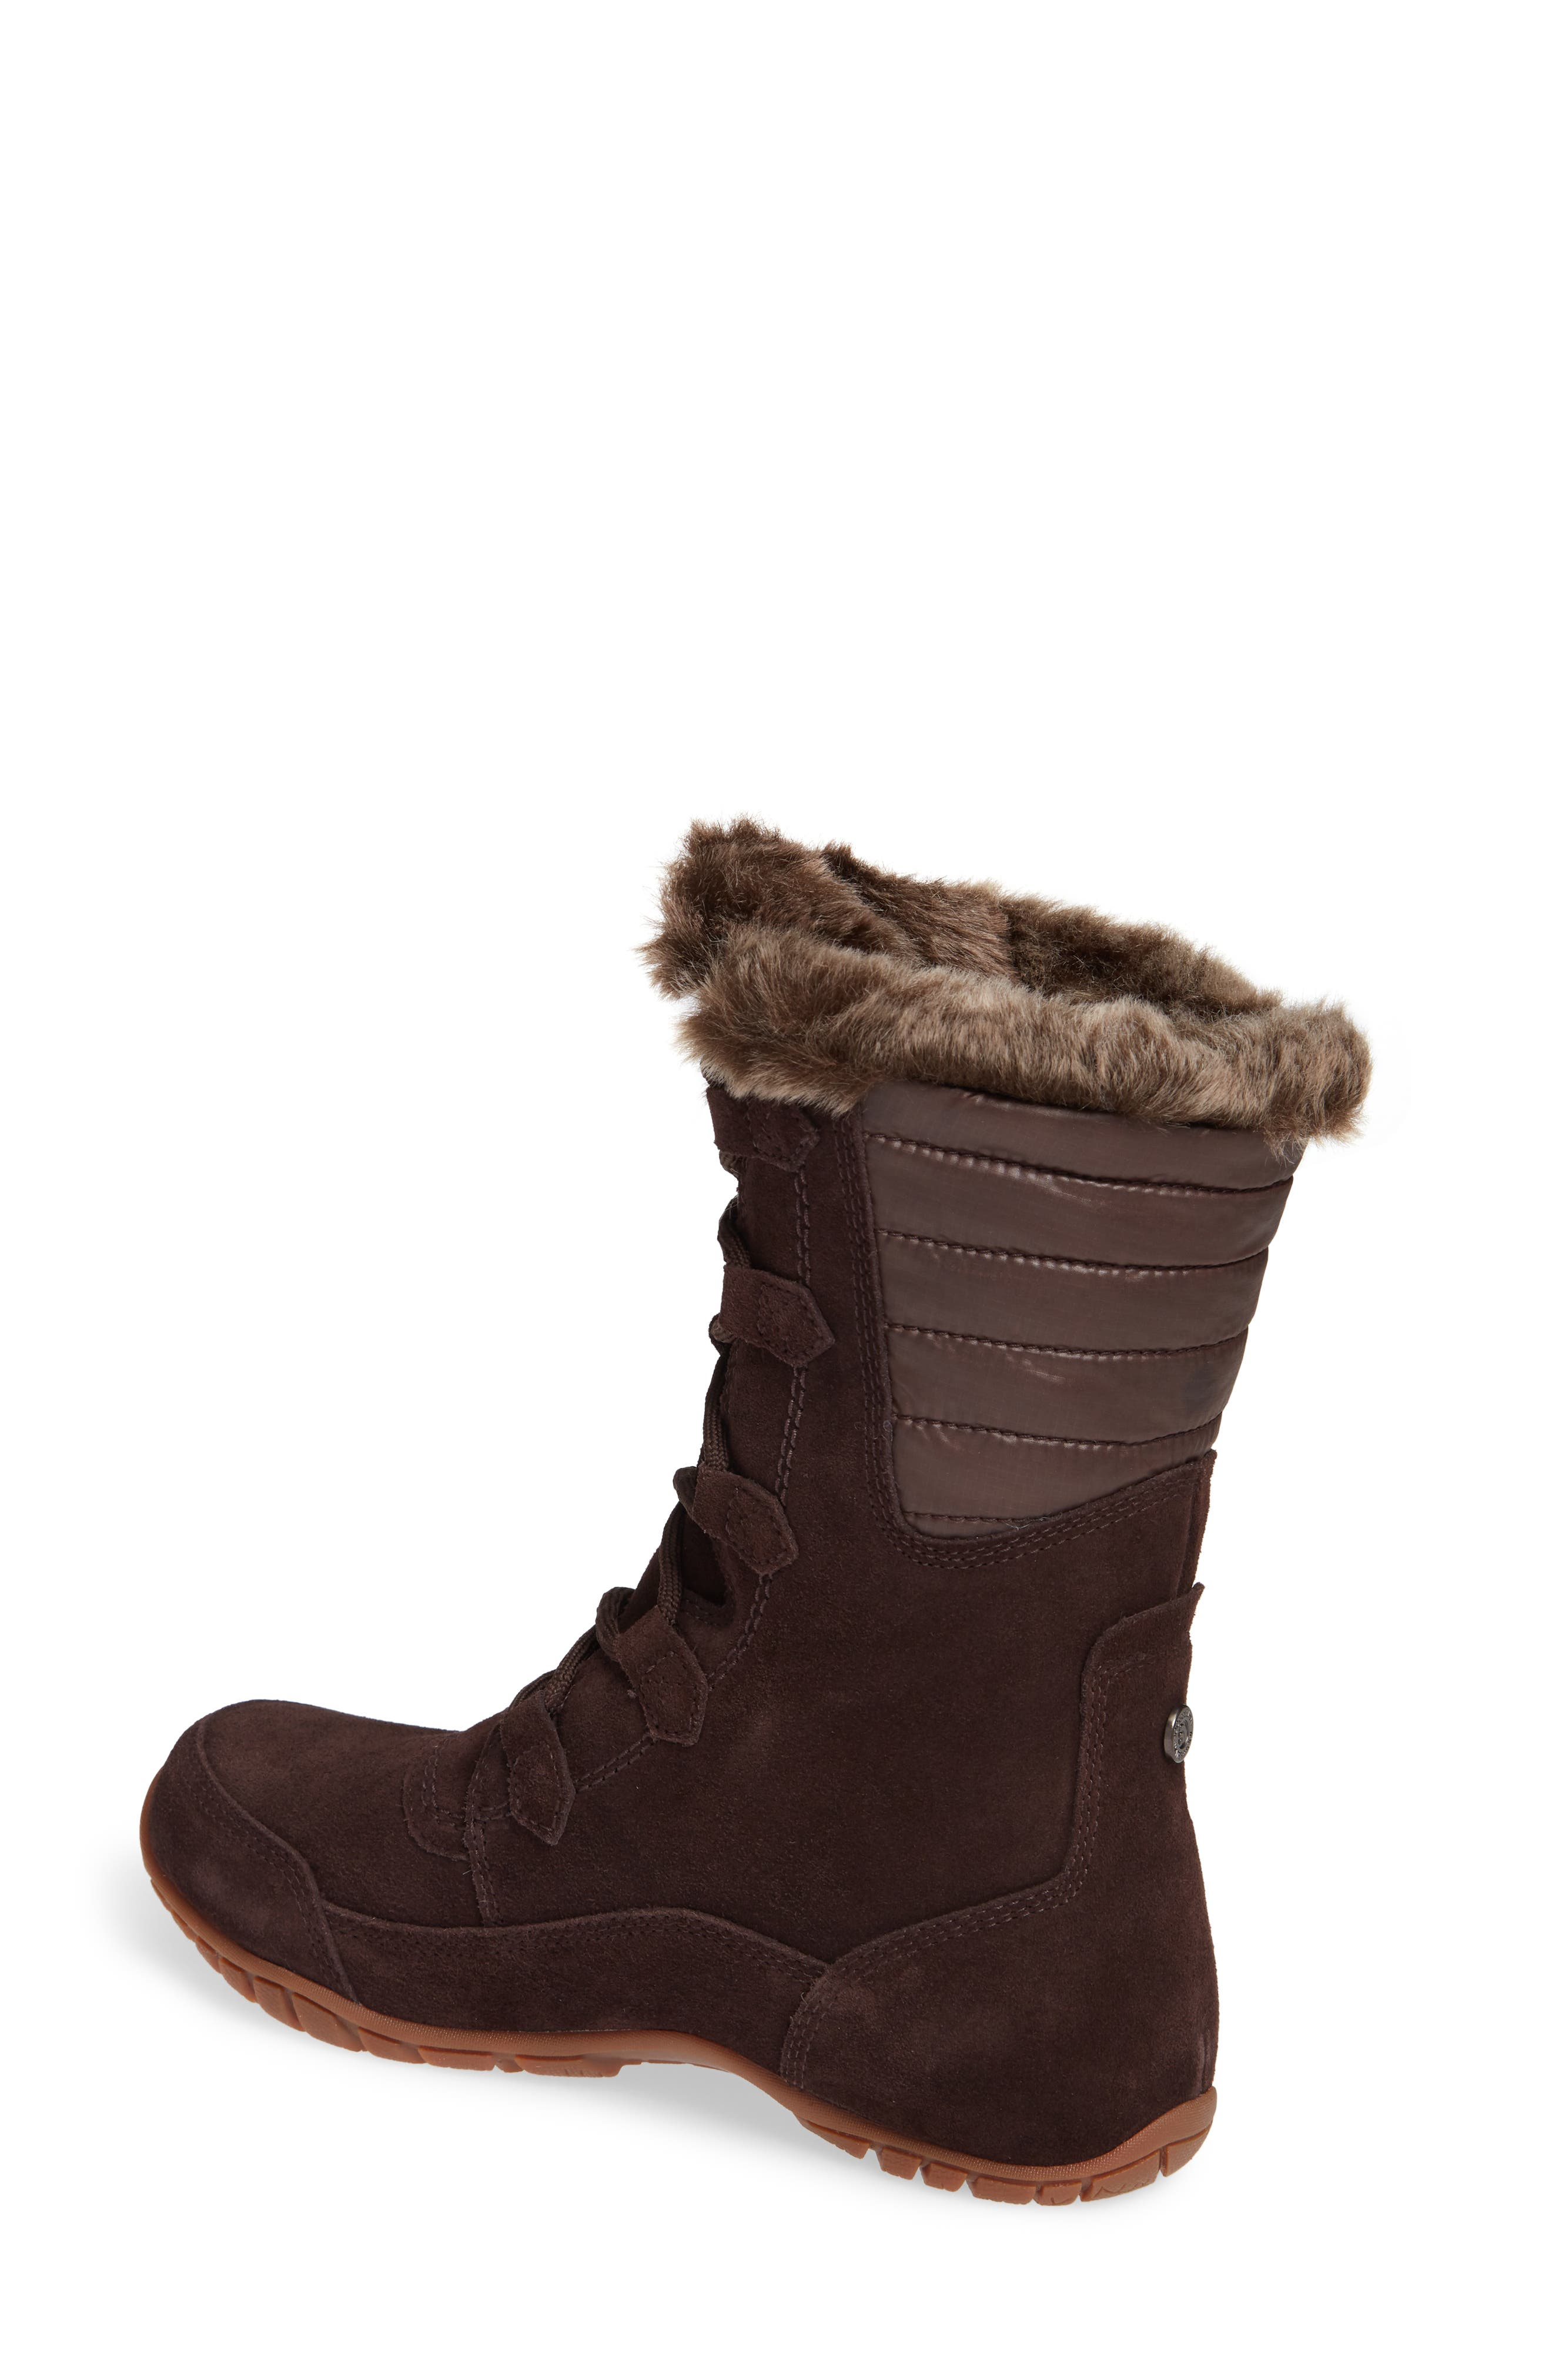 Nuptse Purna II Waterproof PrimaLoft<sup>®</sup> Silver Eco Insulated Winter Boot,                             Alternate thumbnail 2, color,                             201